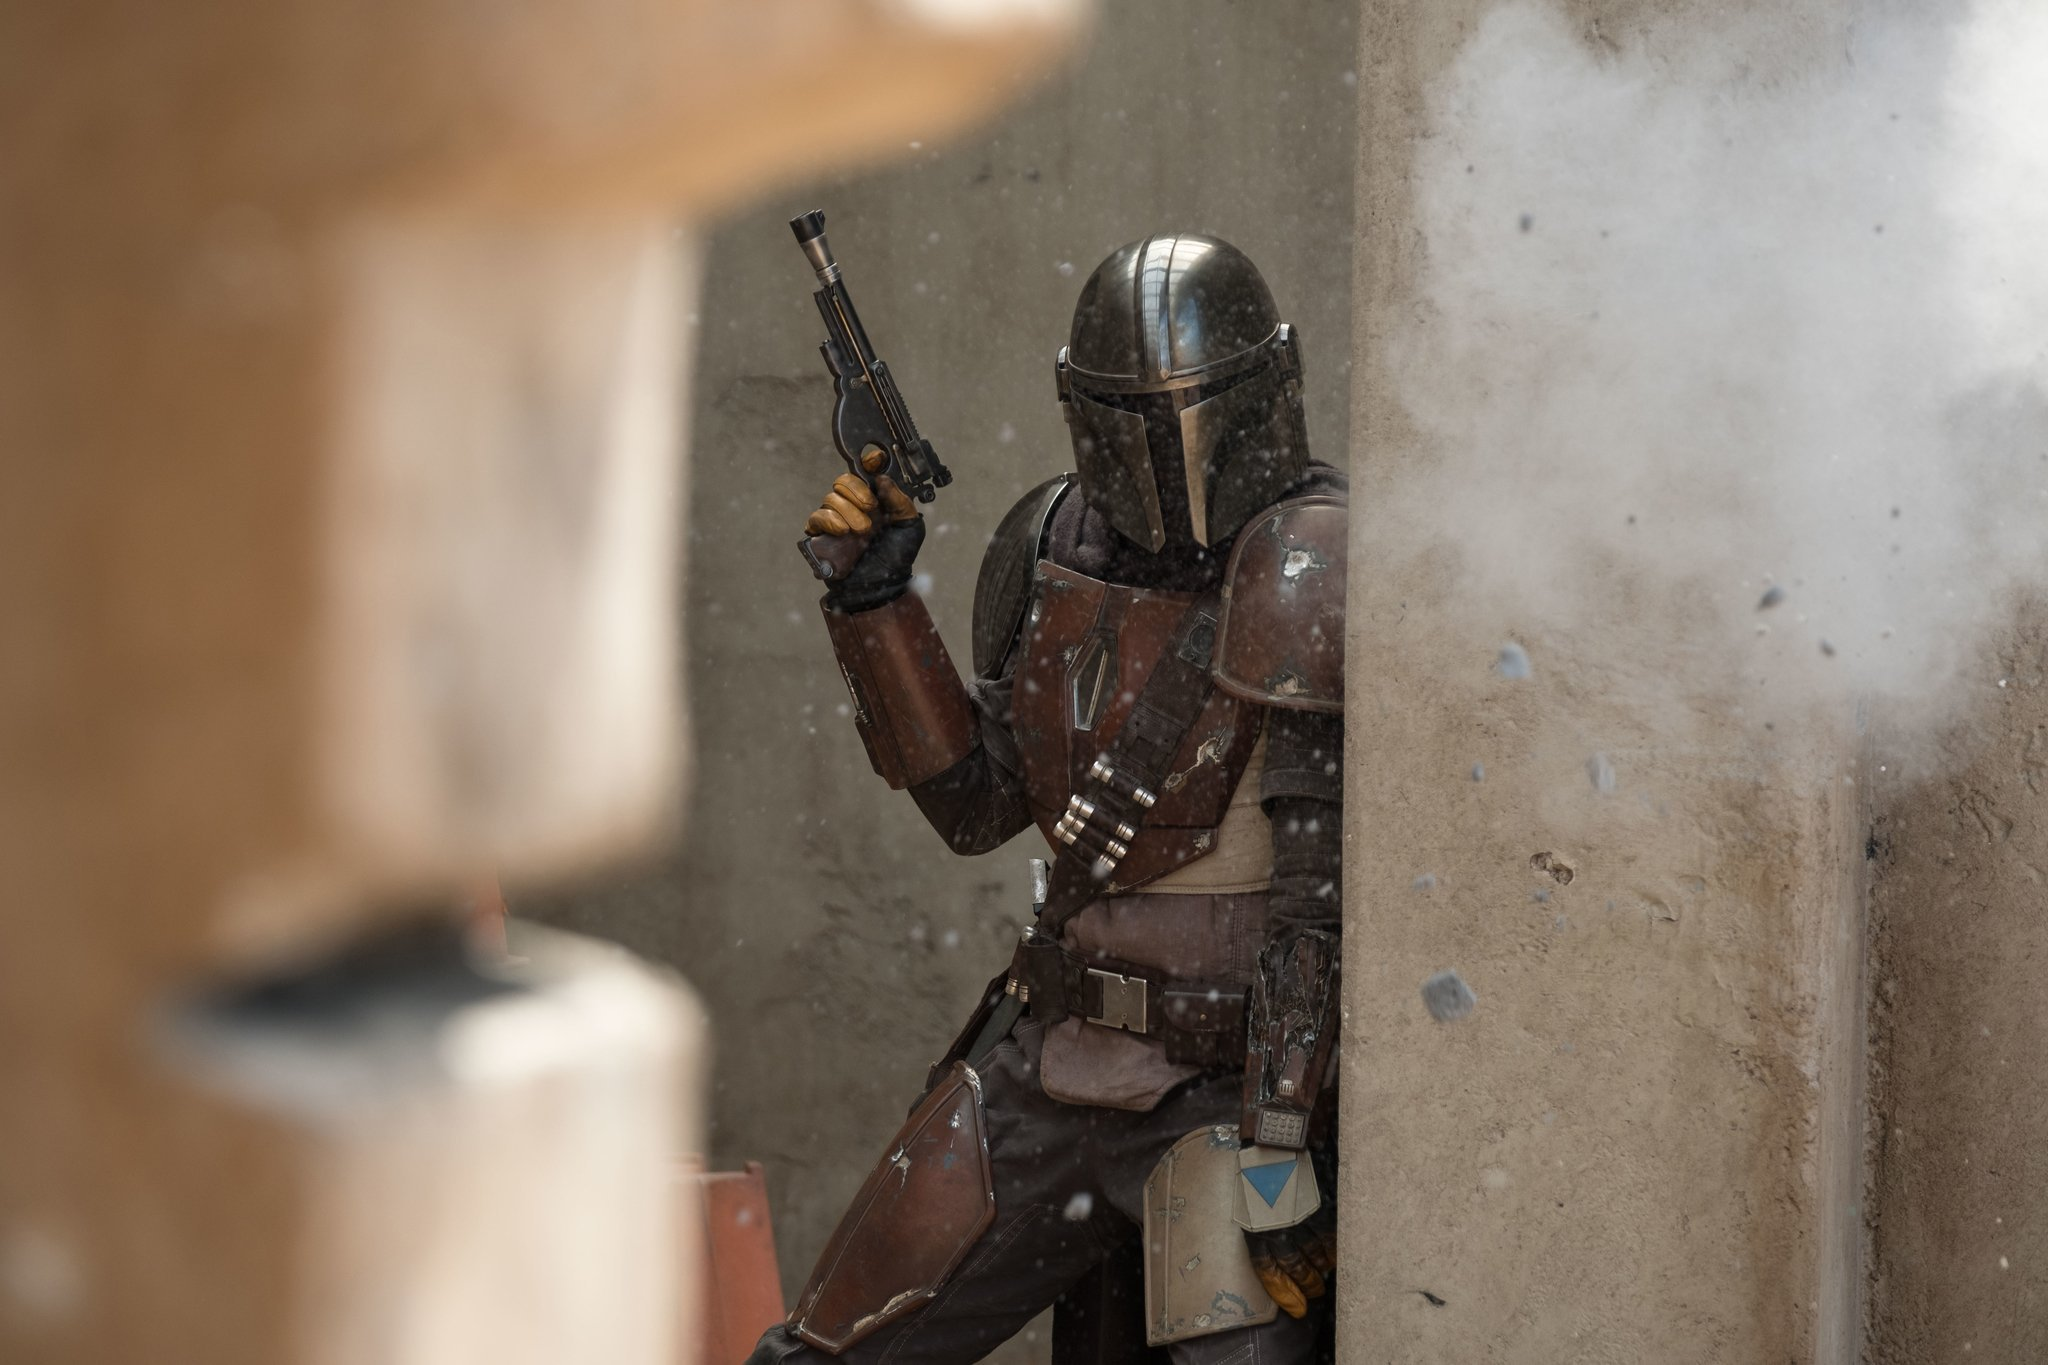 'The Mandalorian' powers Disney's launch into streaming